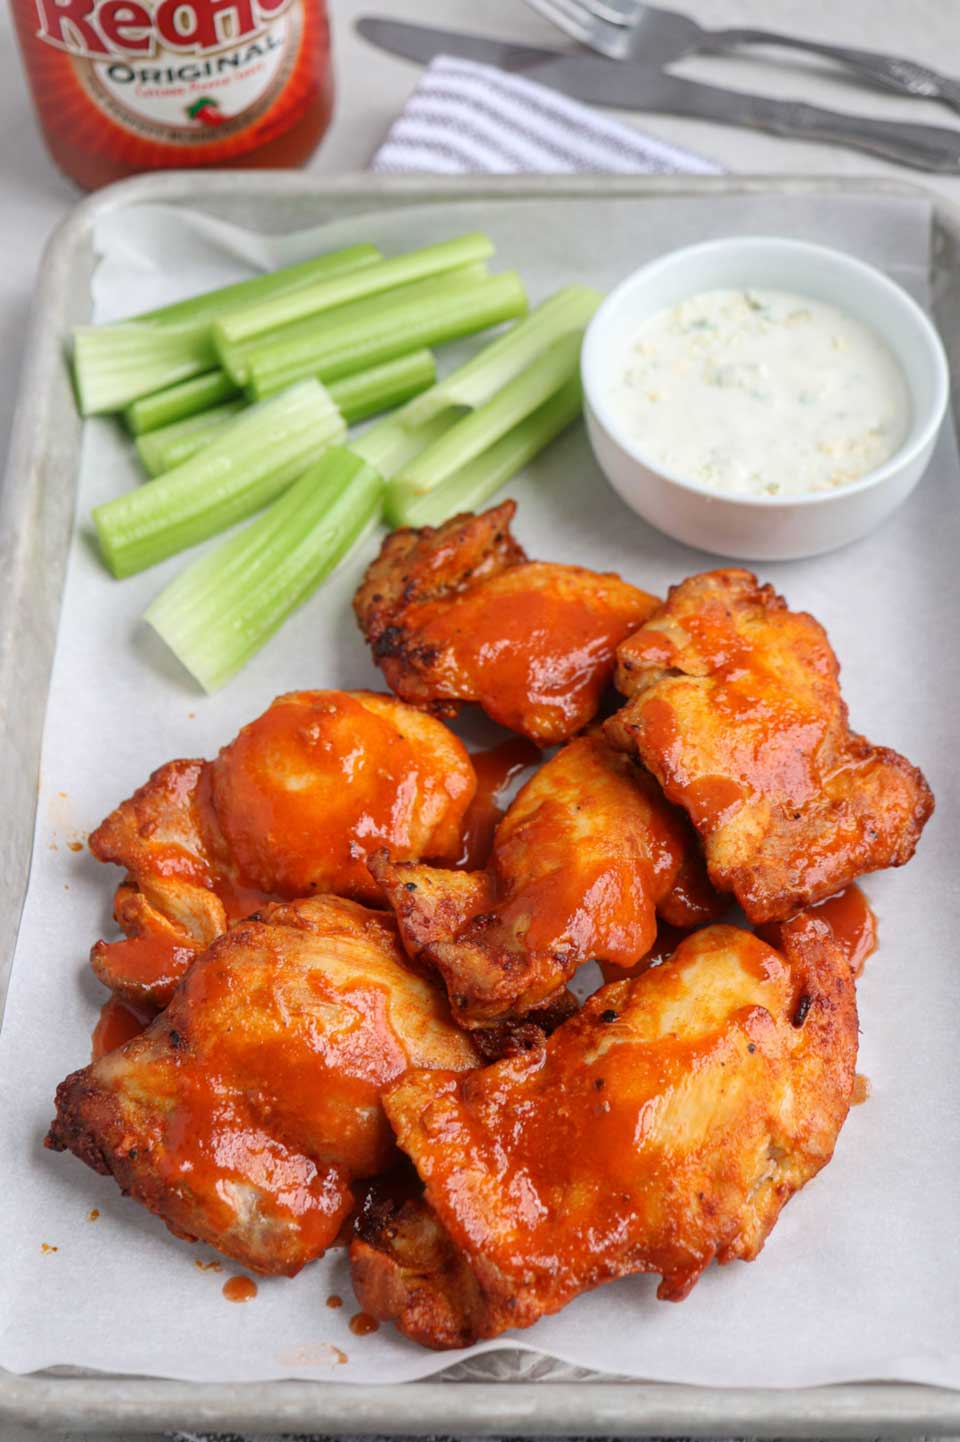 Several buffalo chicken pieces on paper-lined tray with ranch and celery sticks.